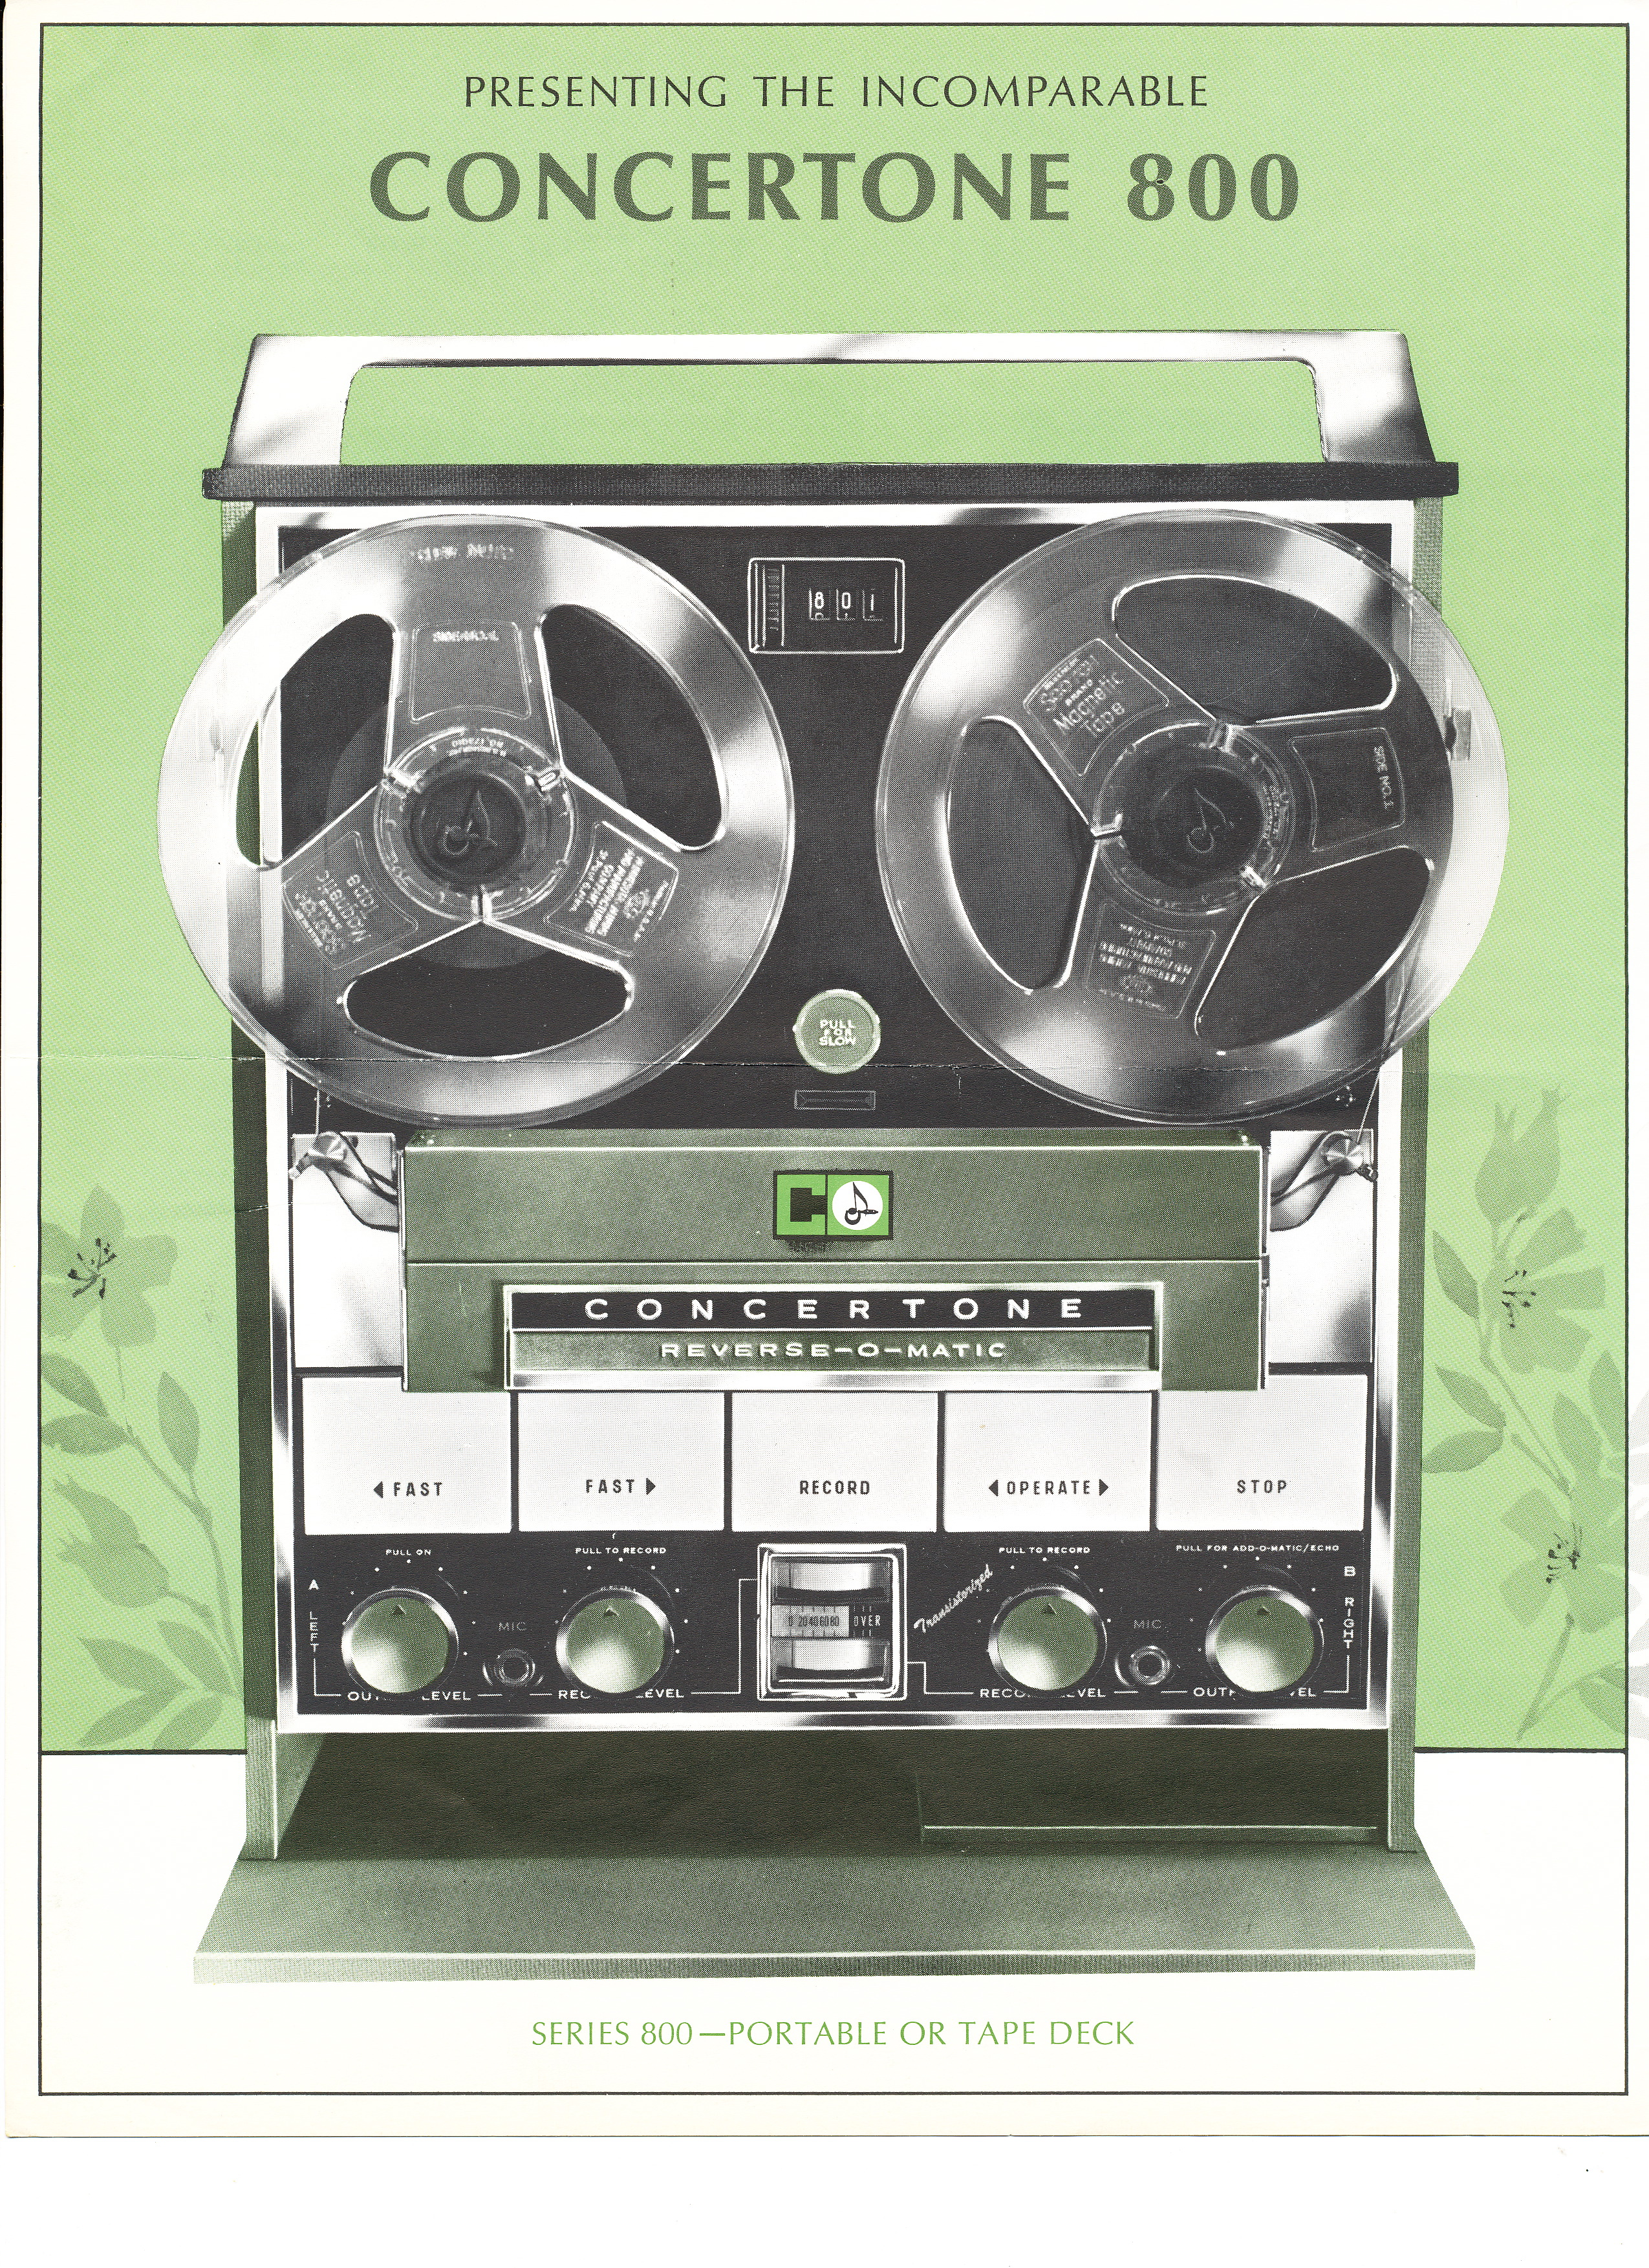 Reel To Tape Recorder Manufacturers Teac Tascam Corporation Marantz 7 Circuit Diagram 1964 Ad For The Concertone 800 Open In Museum